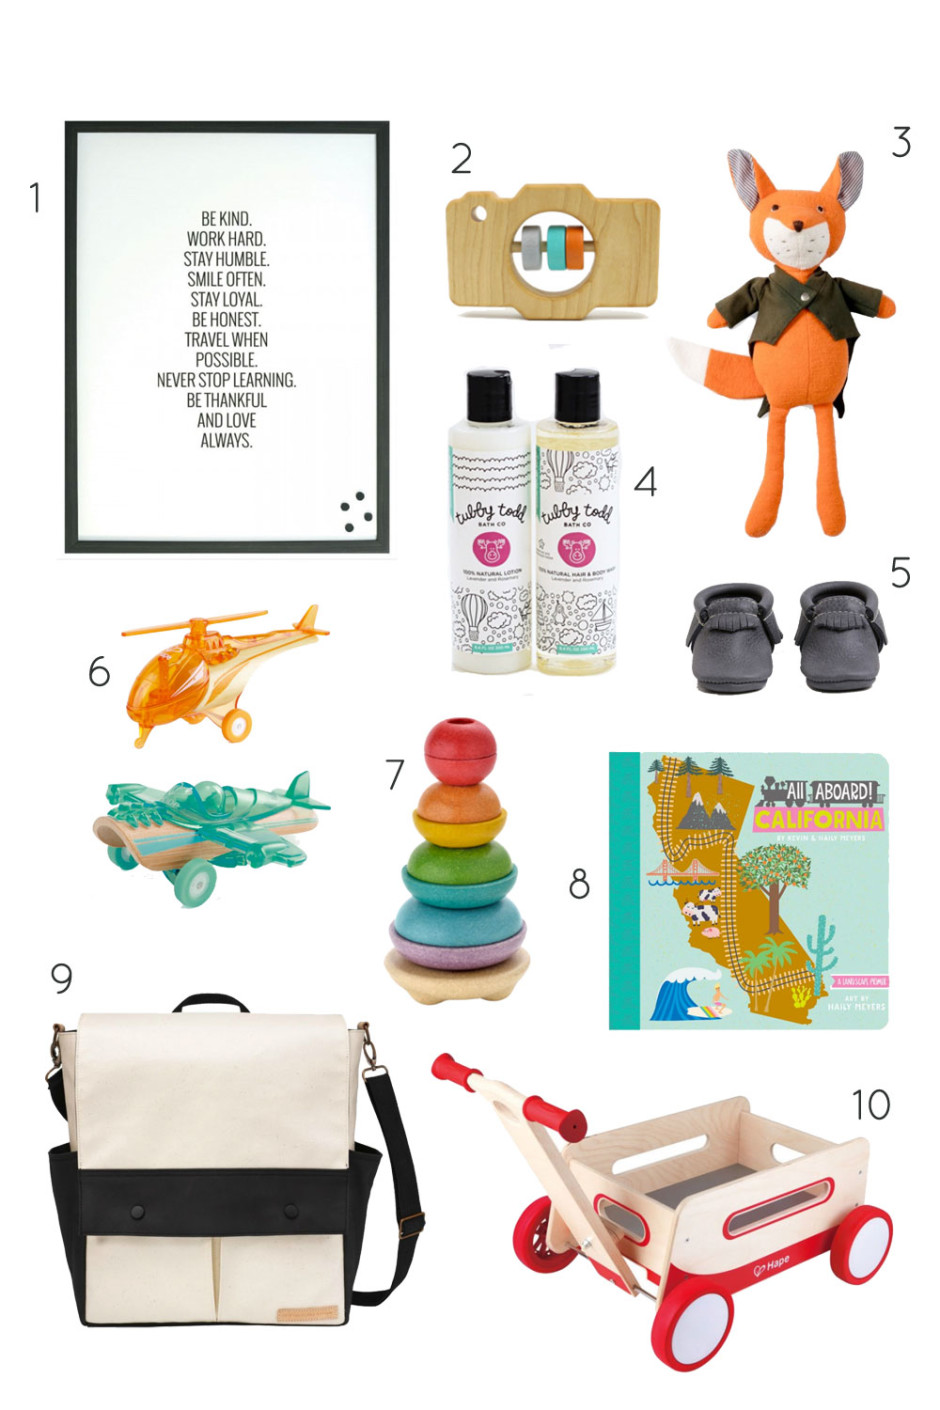 Most-loved-baby-products